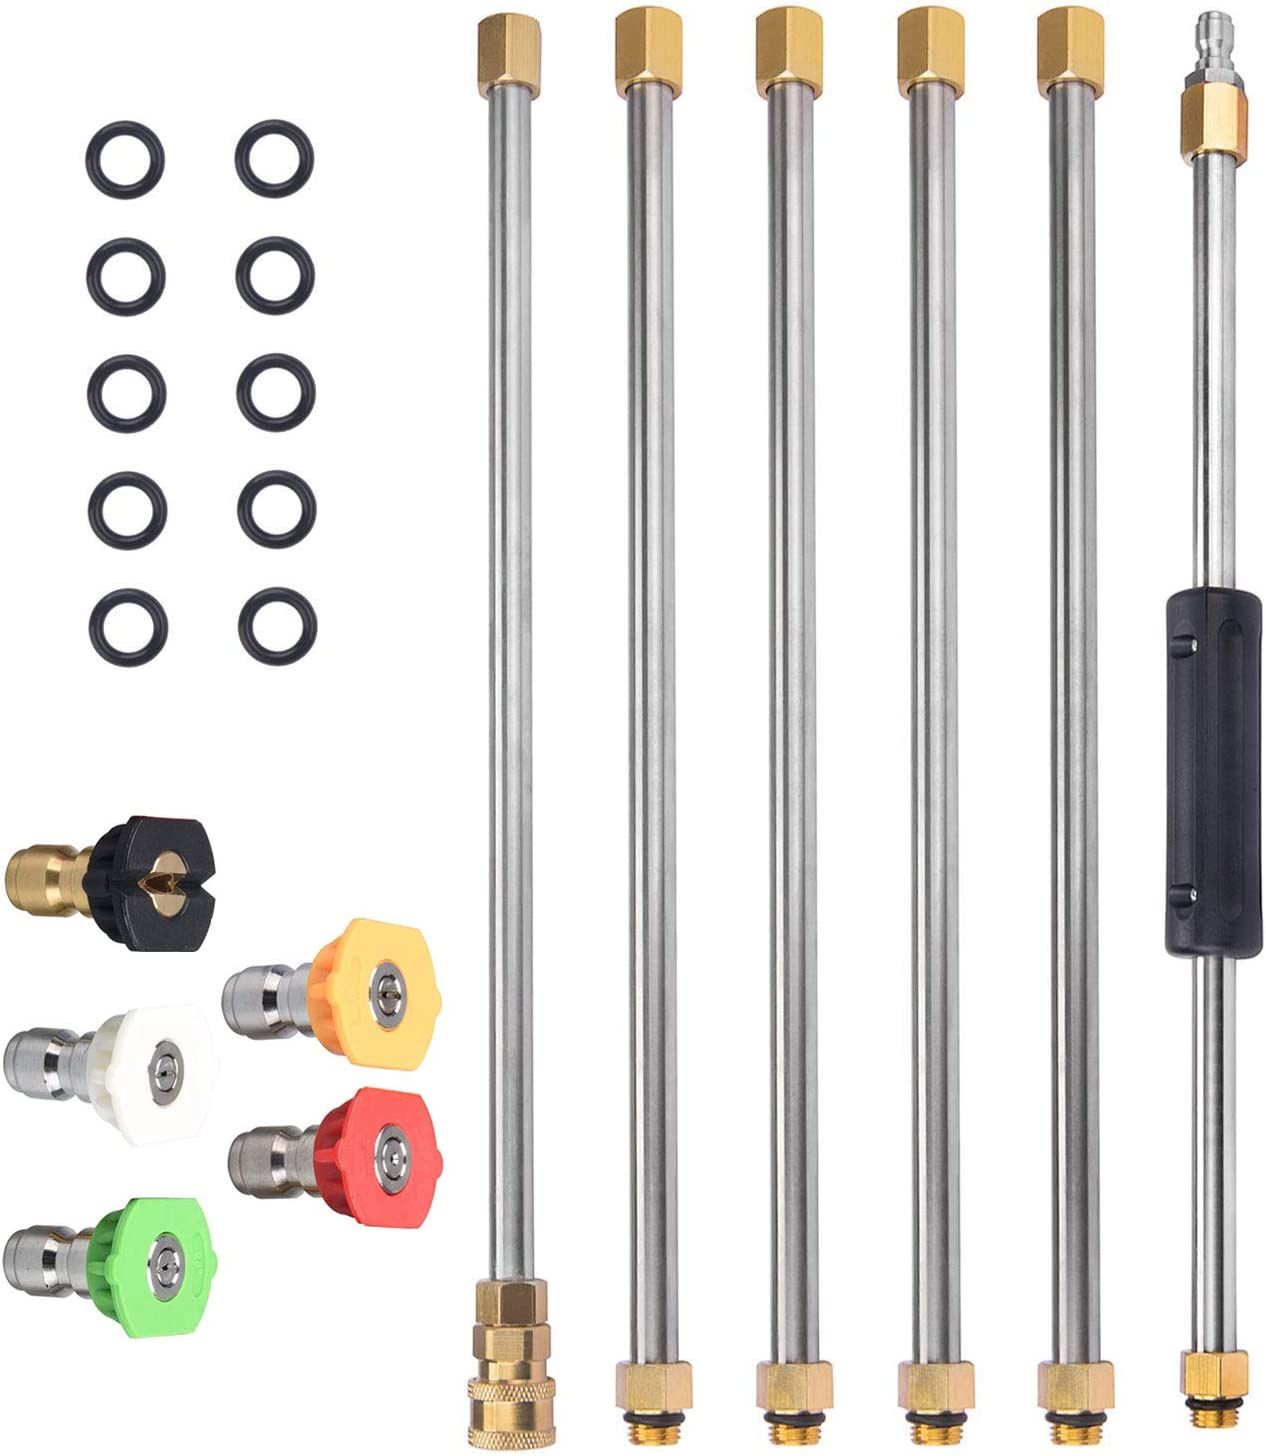 DUSICHIN DUS-104 Pressure Washer Wand Extension Pole Replacement Lance 7.5-Feet 1/4'' Quick Connect 4000 PSI with 5 Water Nozzles